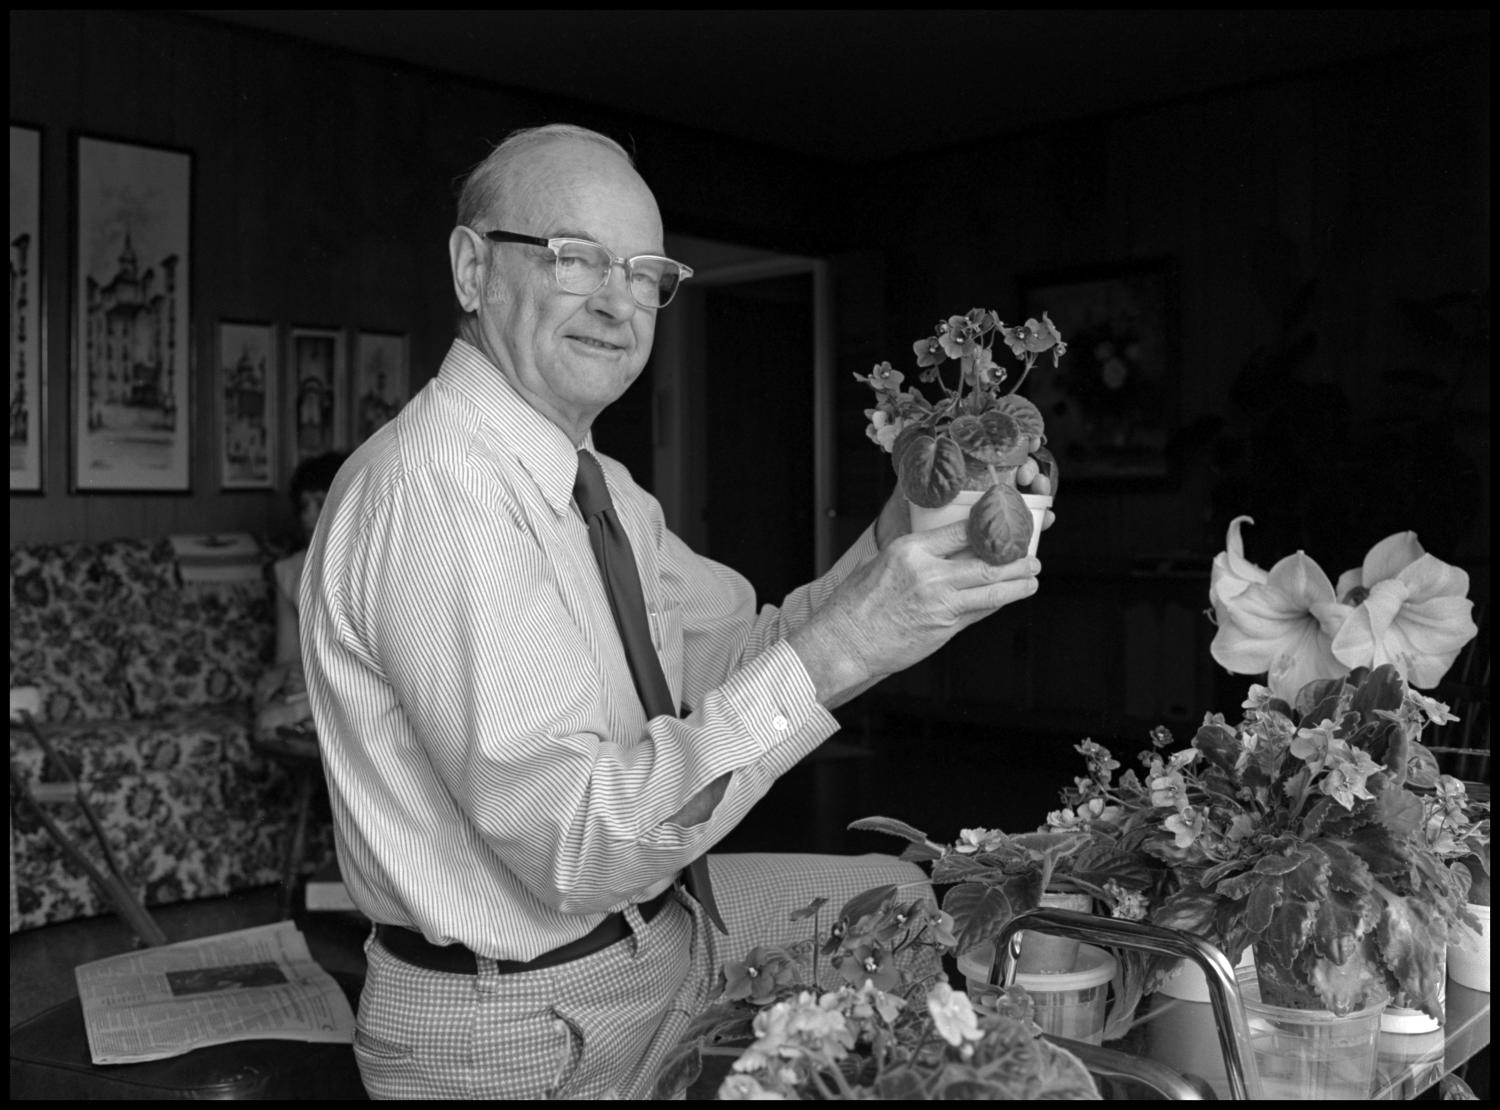 [Garland Brookshear holding up pansies], Photograph of Garland Brookshear, a member of the Management faculty at NTSU, holding a potted plant that appears to be pansies. He is being photographed for his retirement.,